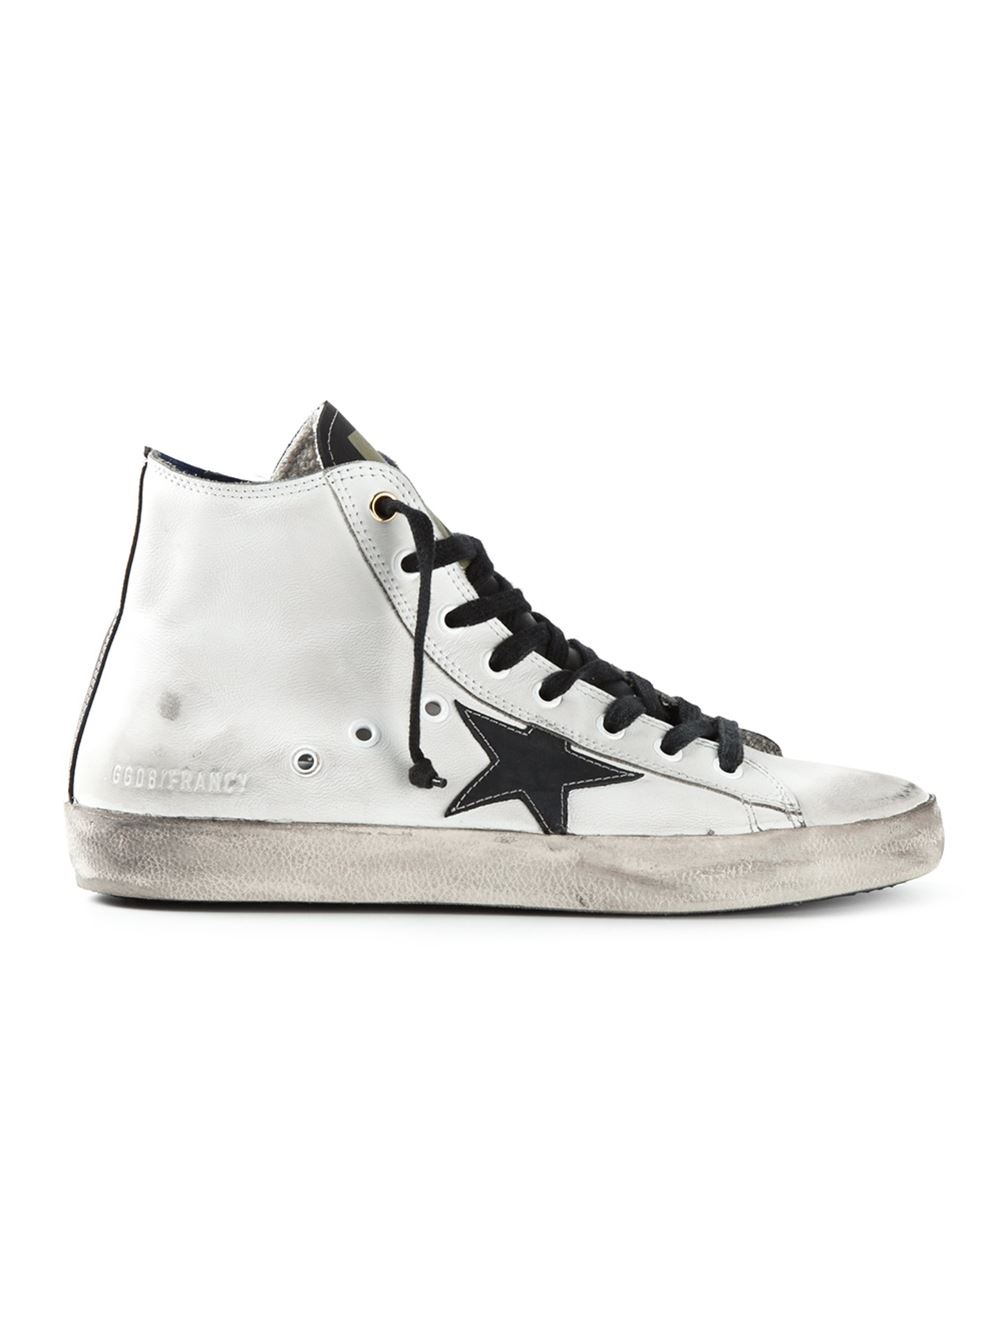 golden goose deluxe brand francy high top sneakers in white lyst. Black Bedroom Furniture Sets. Home Design Ideas